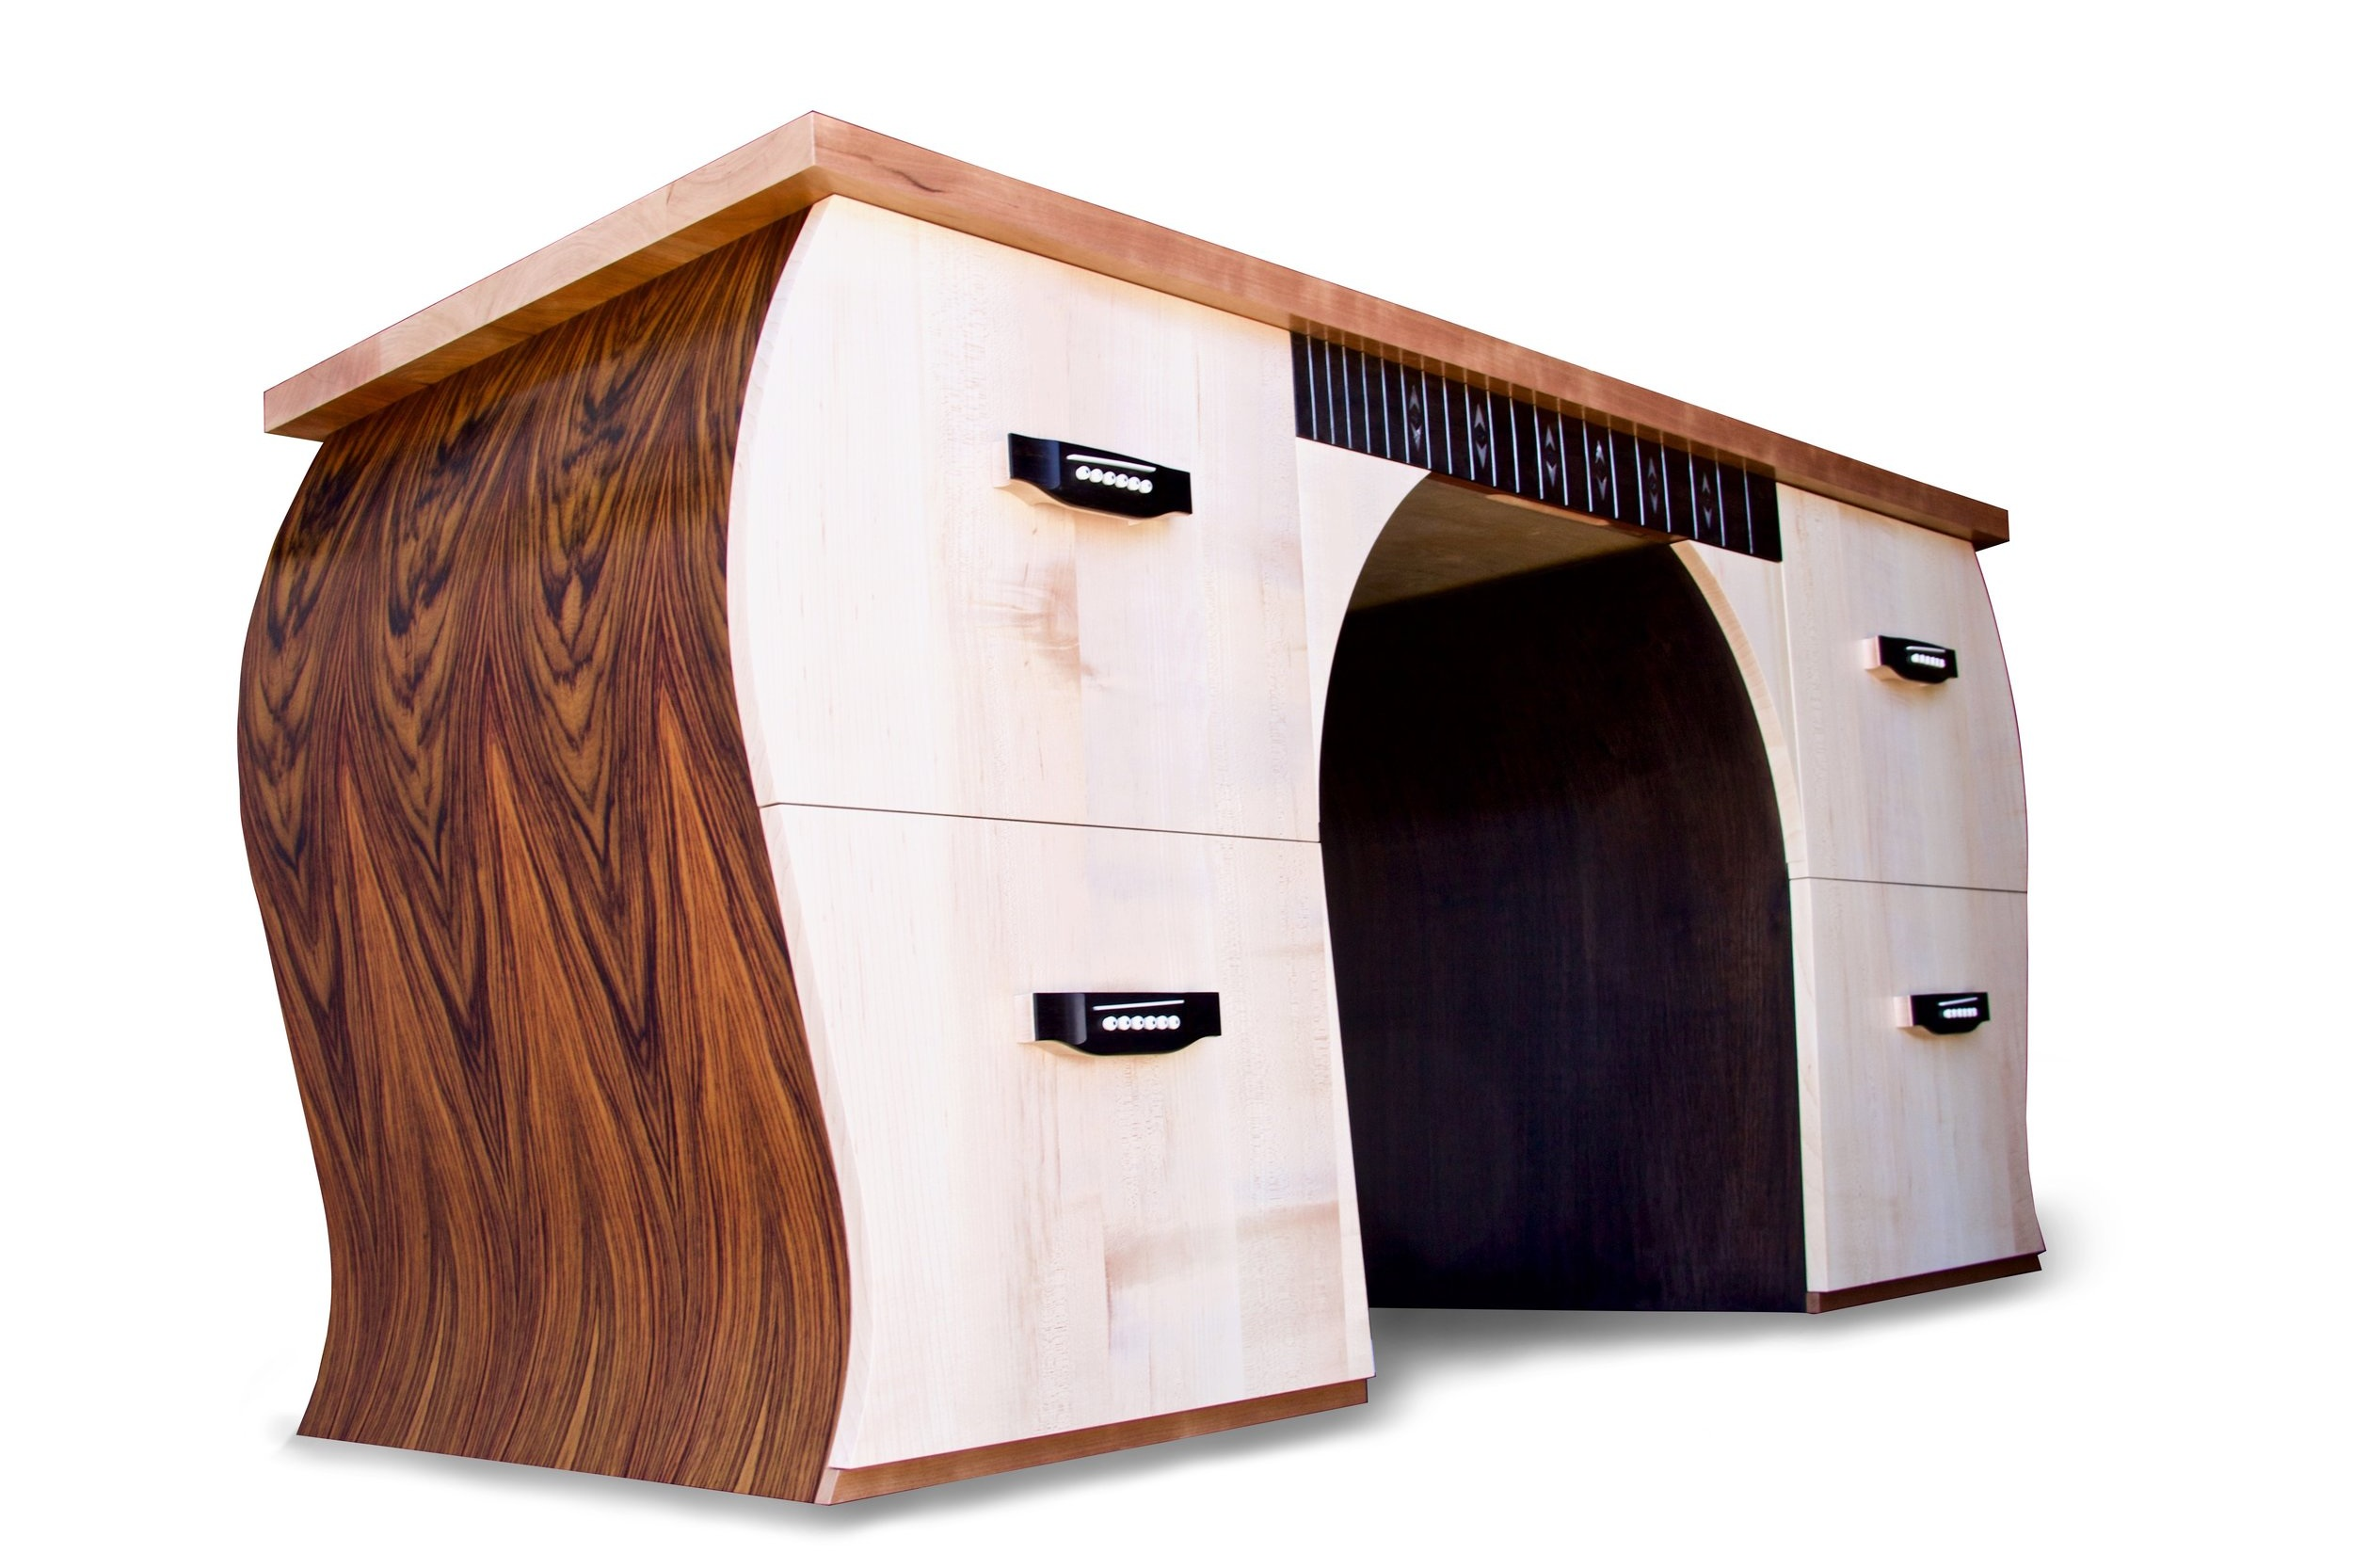 super-custom guitar desk - with full-scale guitar inlaid into top